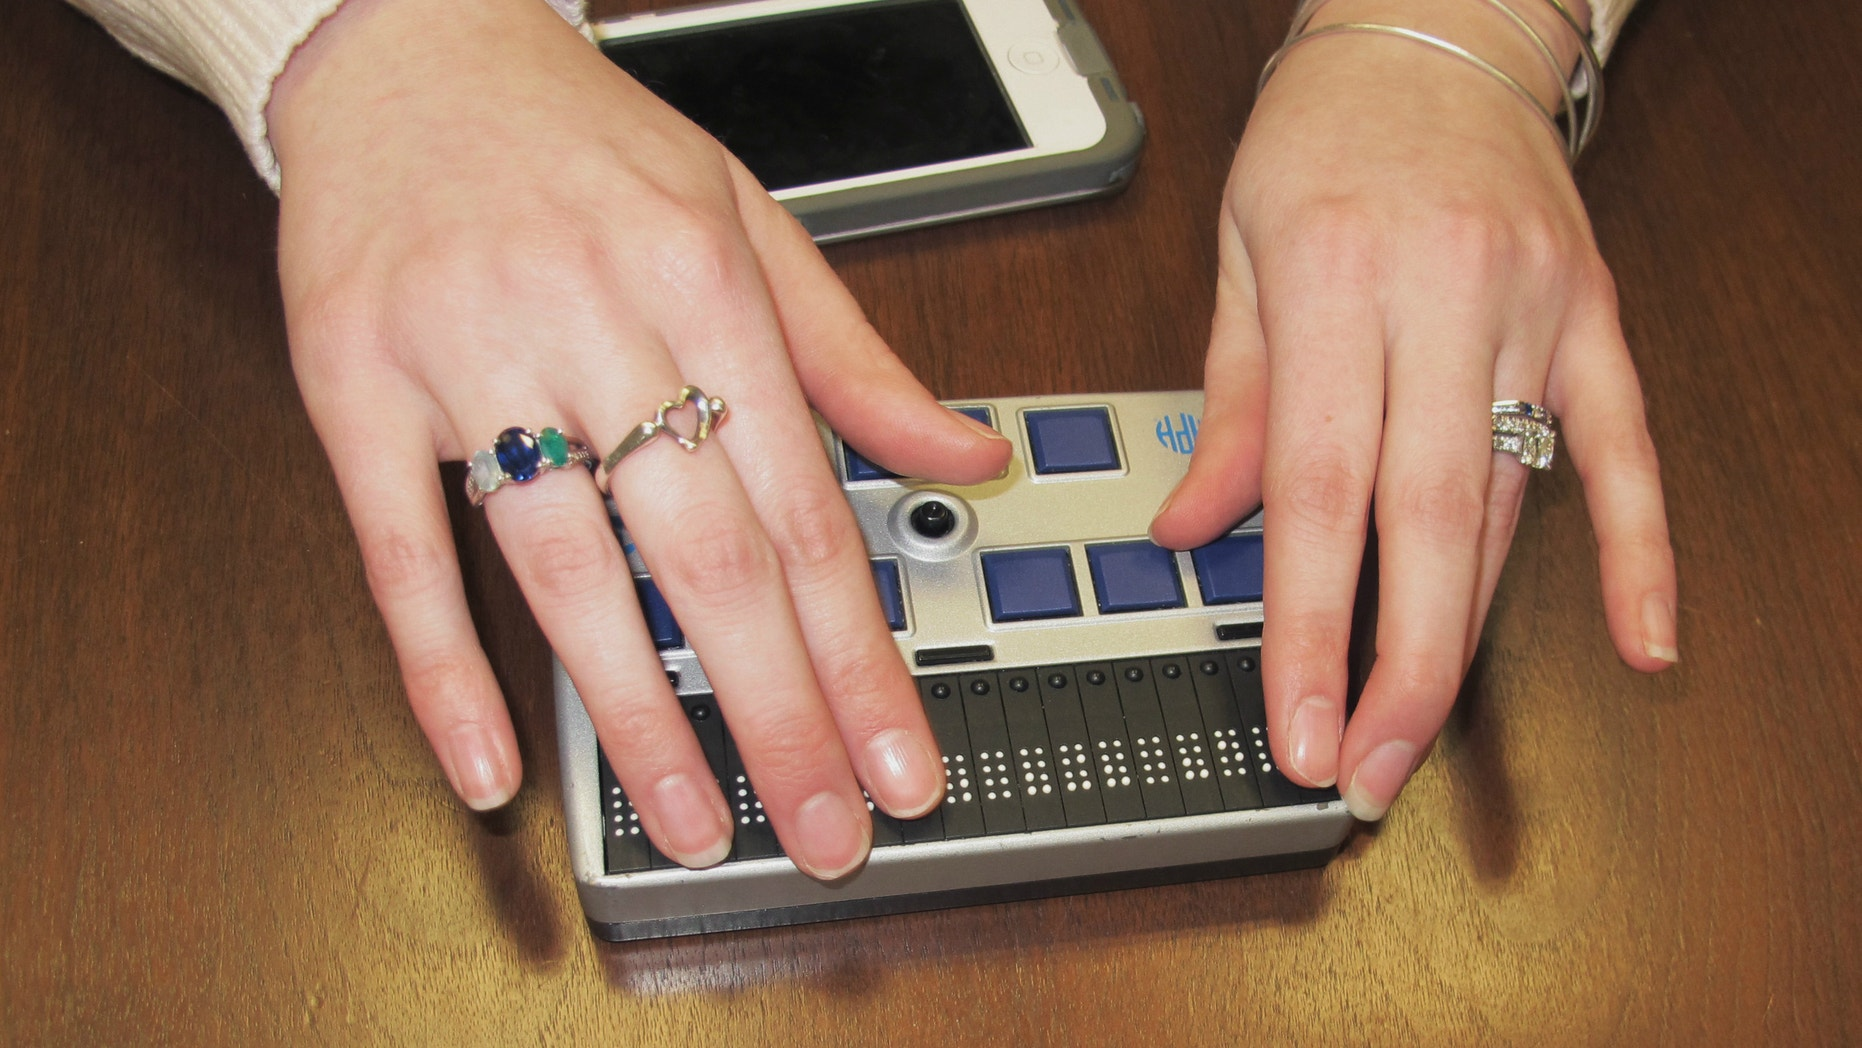 Megan Dausch, an instructor at the Helen Keller National Center, demonstrates the use of a Braille reader that helps blind clients access the Internet.